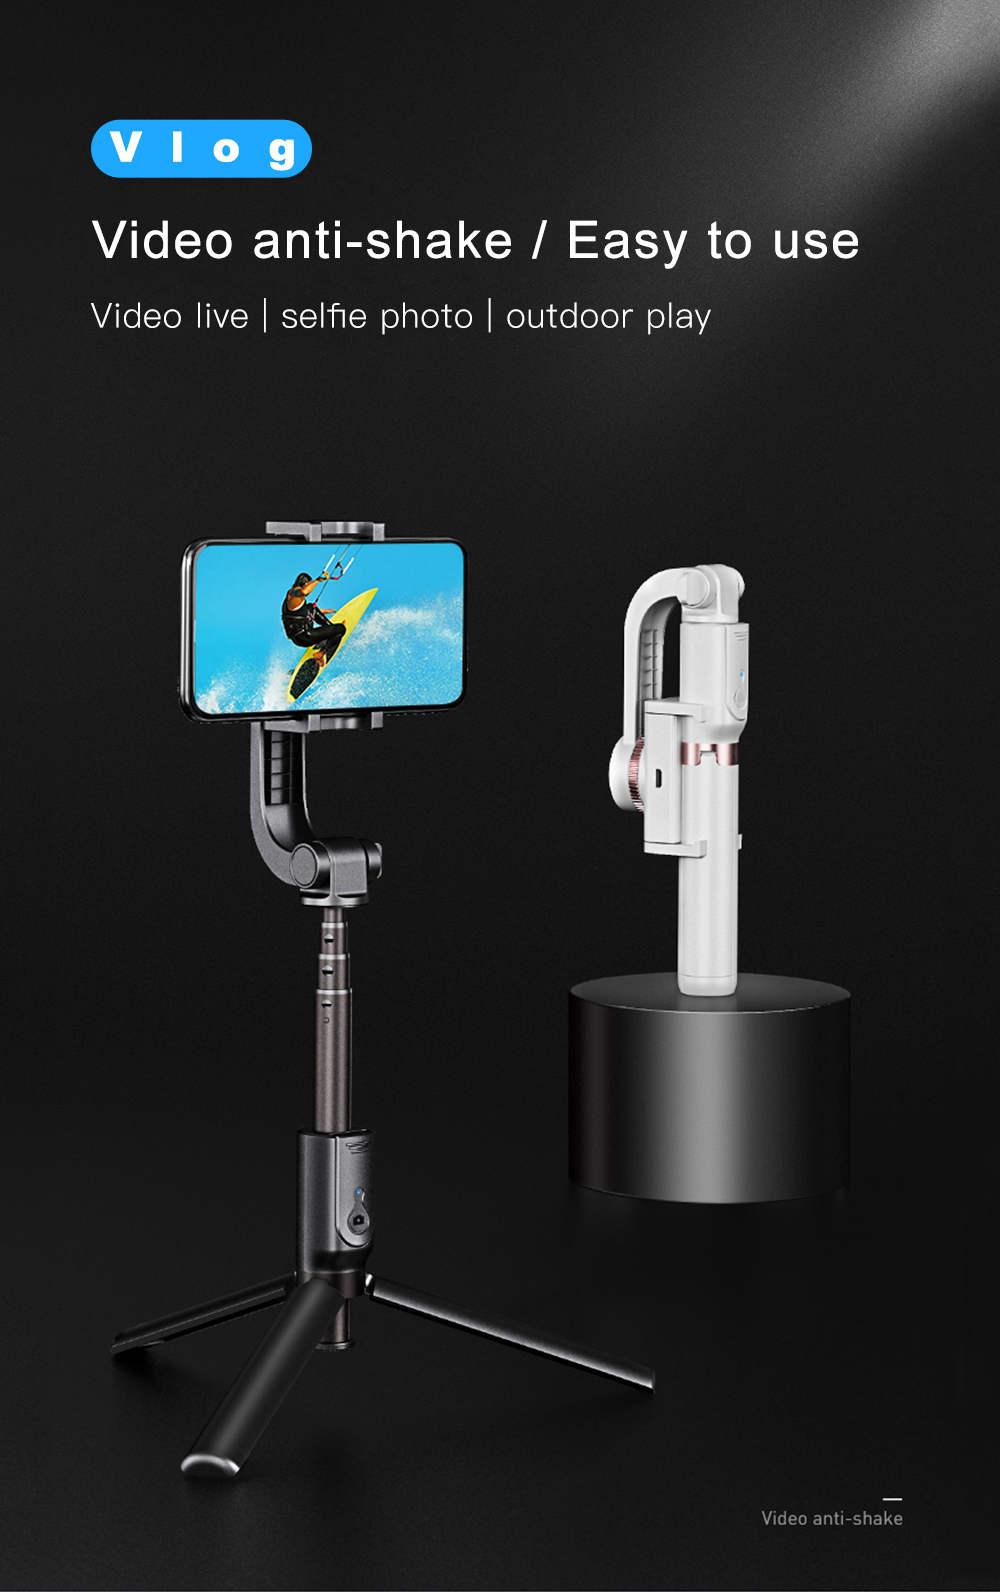 Bonola 3 in1 Handheld Gimbal Stabilizer Smartphone Selfie Stick Tripod For iOSAndroid Video Stabilizer For iPhone11ProSamsung (1)